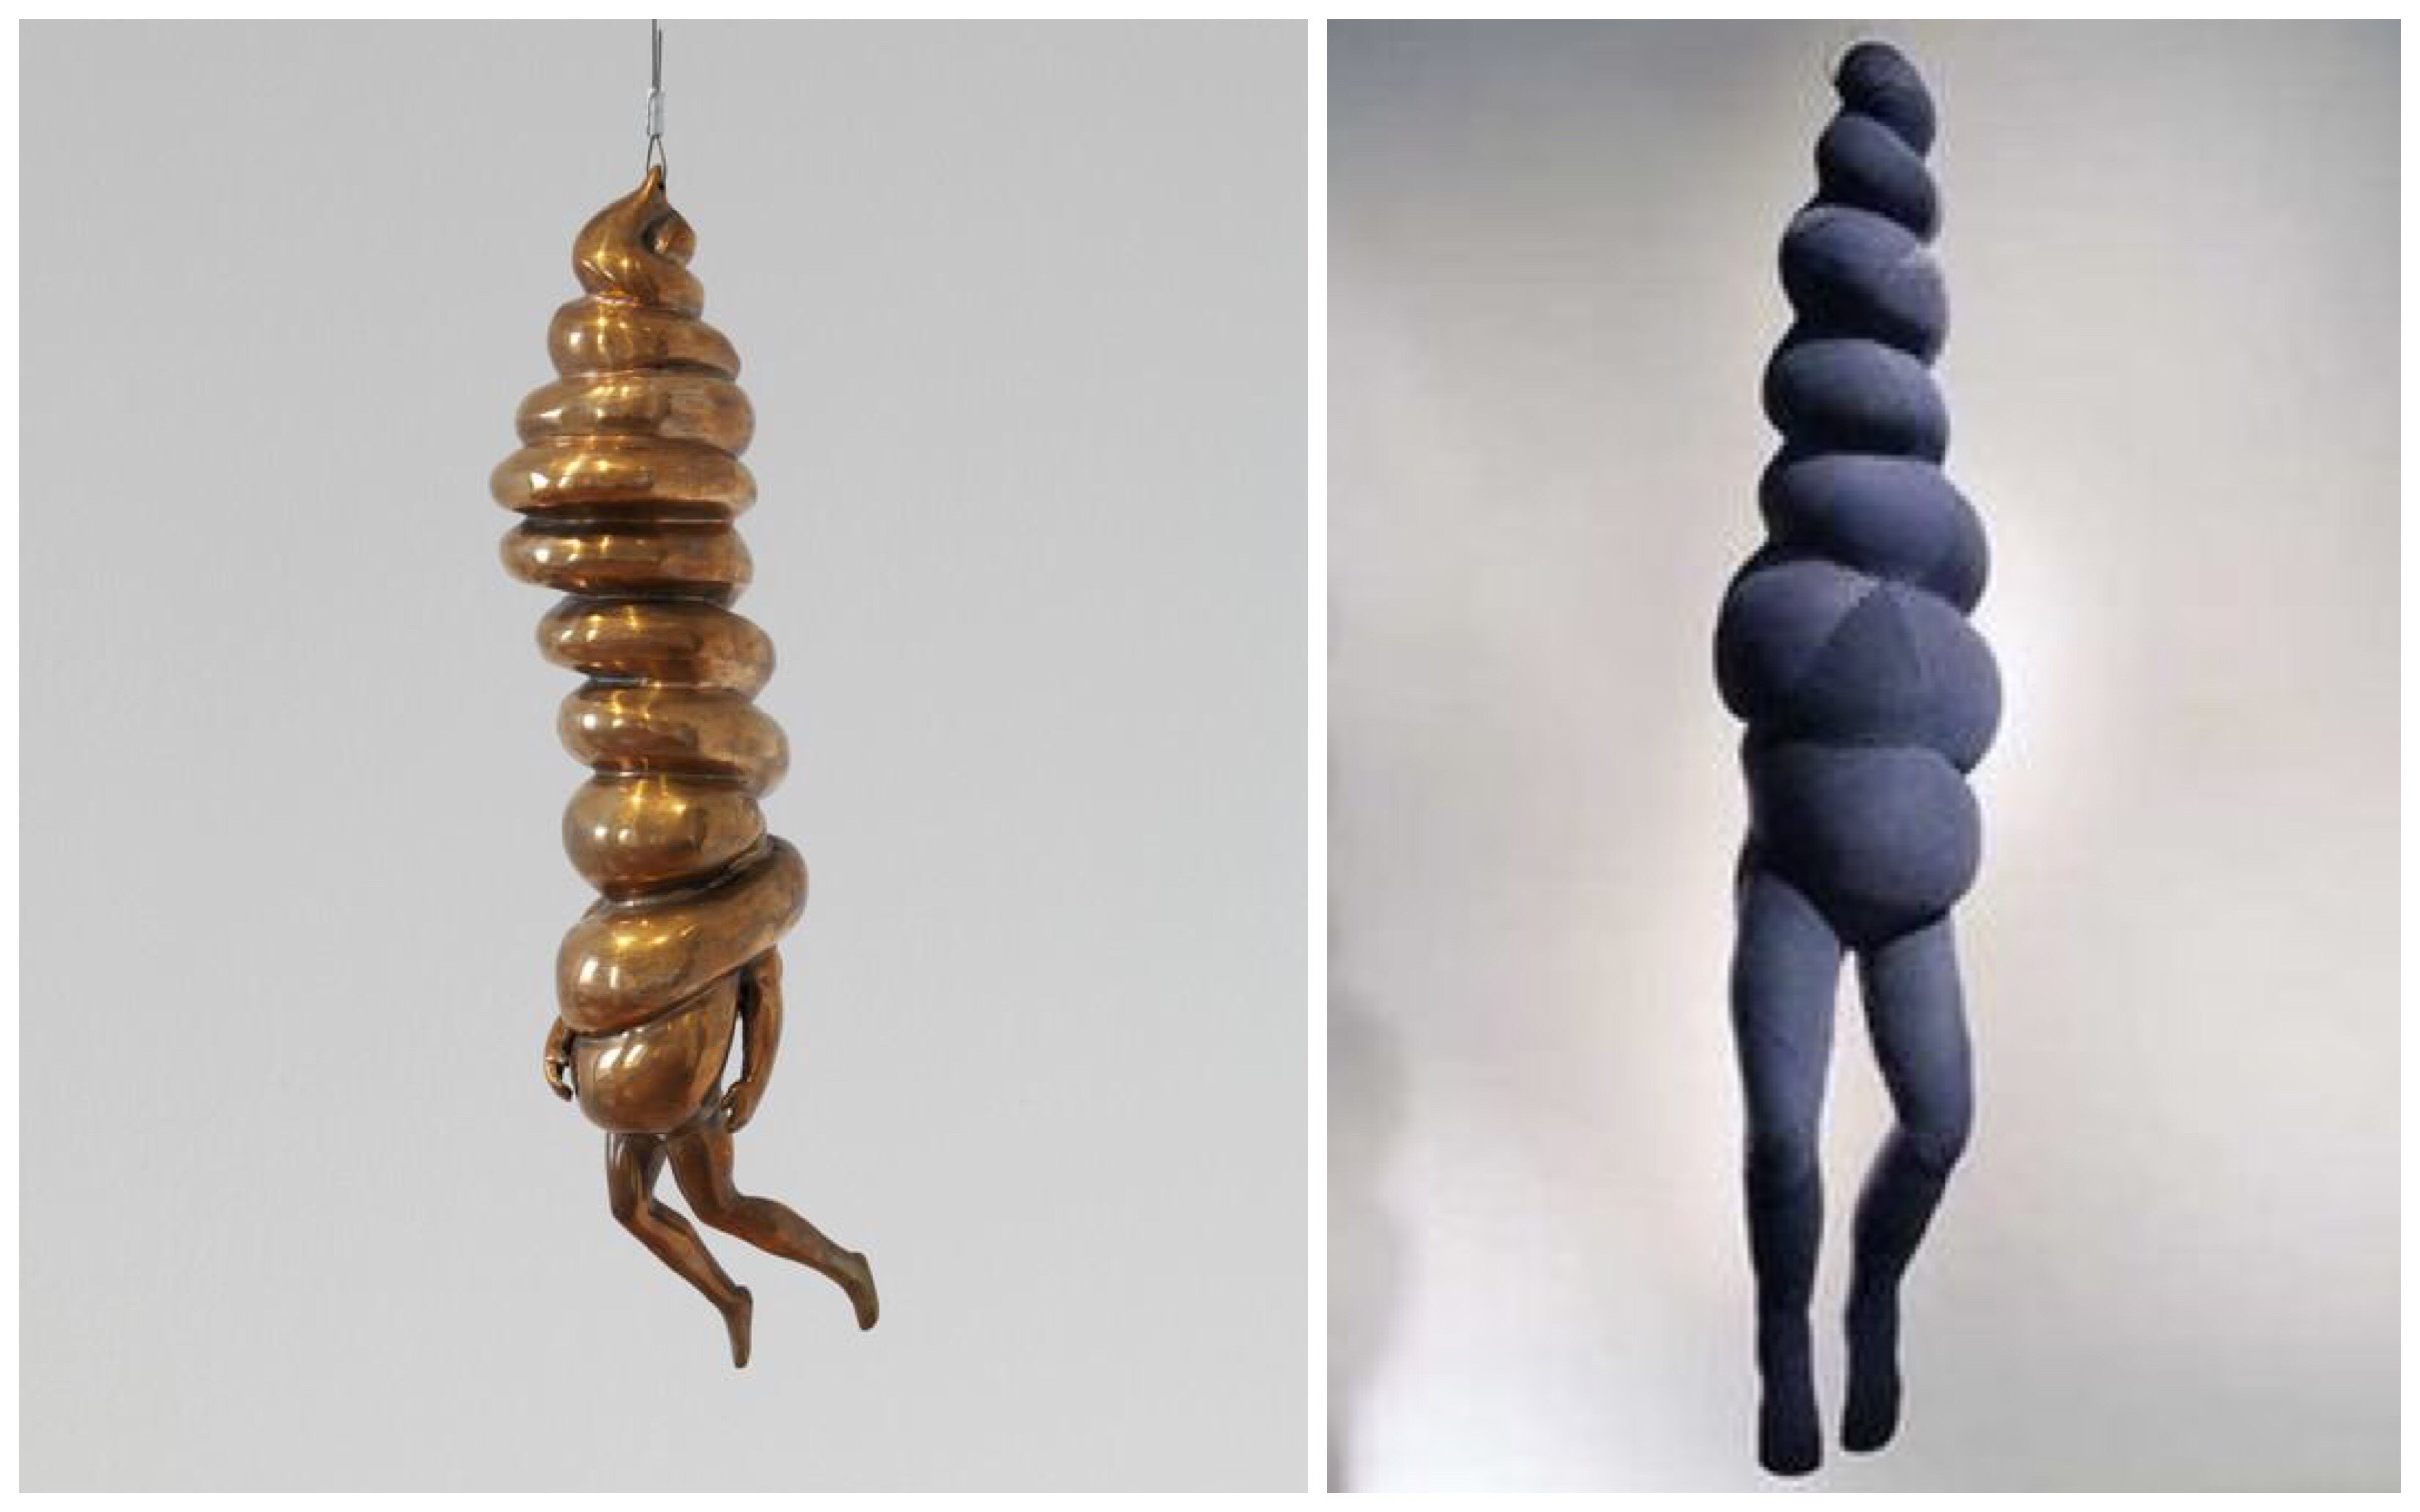 Spiral Woman, 1984 and Spiral Woman 2003